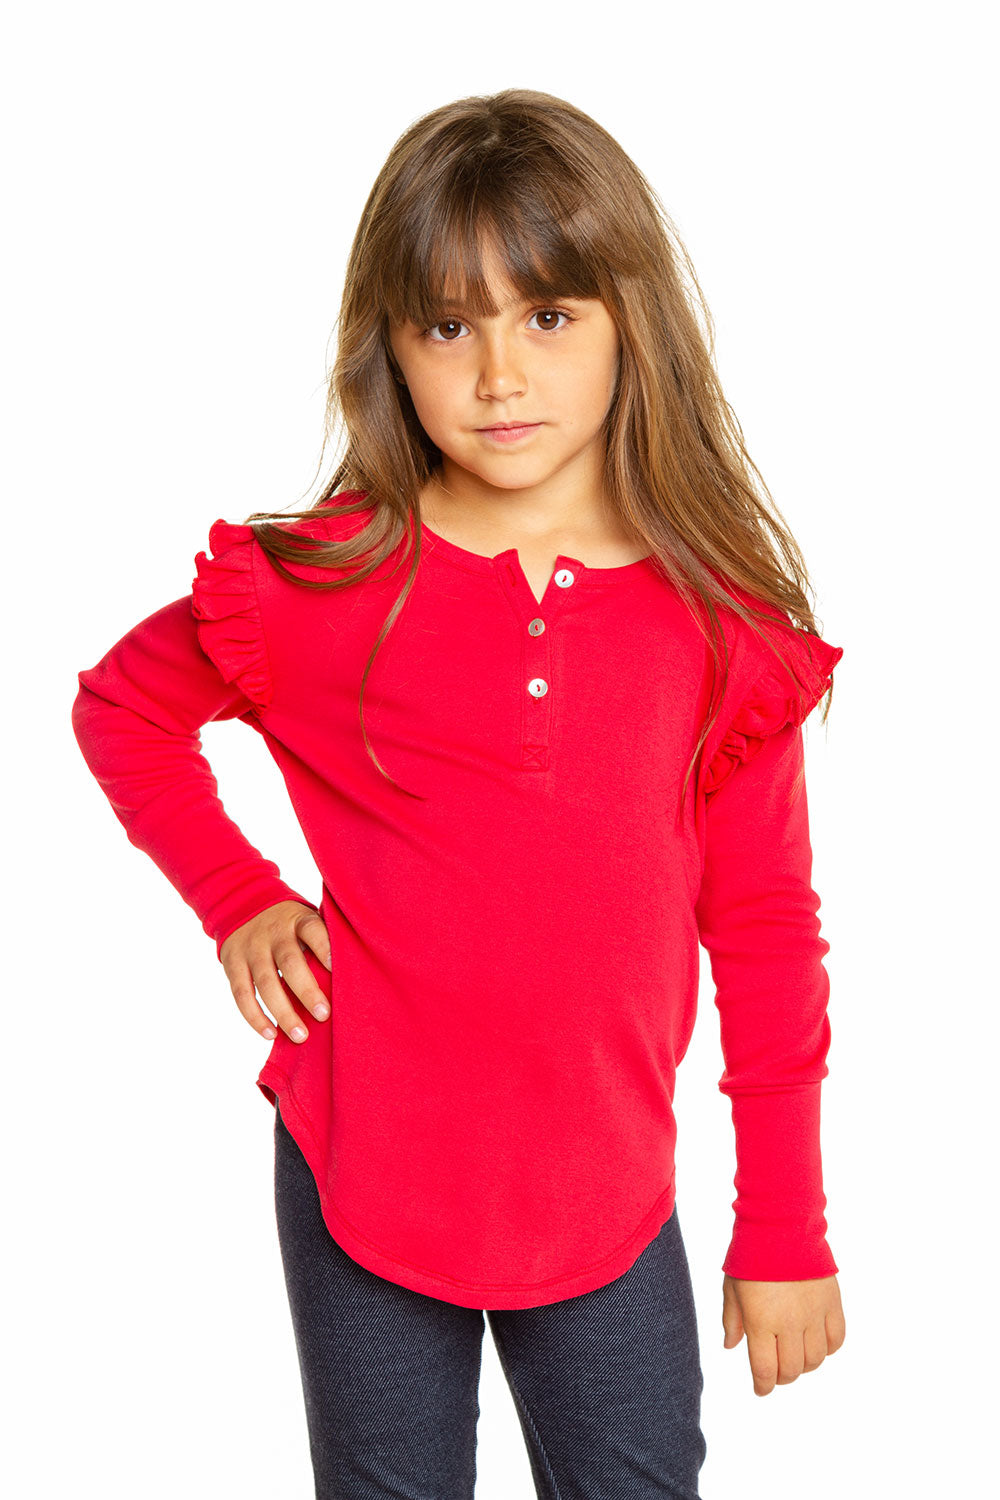 Girls Baby Rib Ruffle Long Sleeve Cuffed Shirttail Henley GIRLS chaserbrand4.myshopify.com